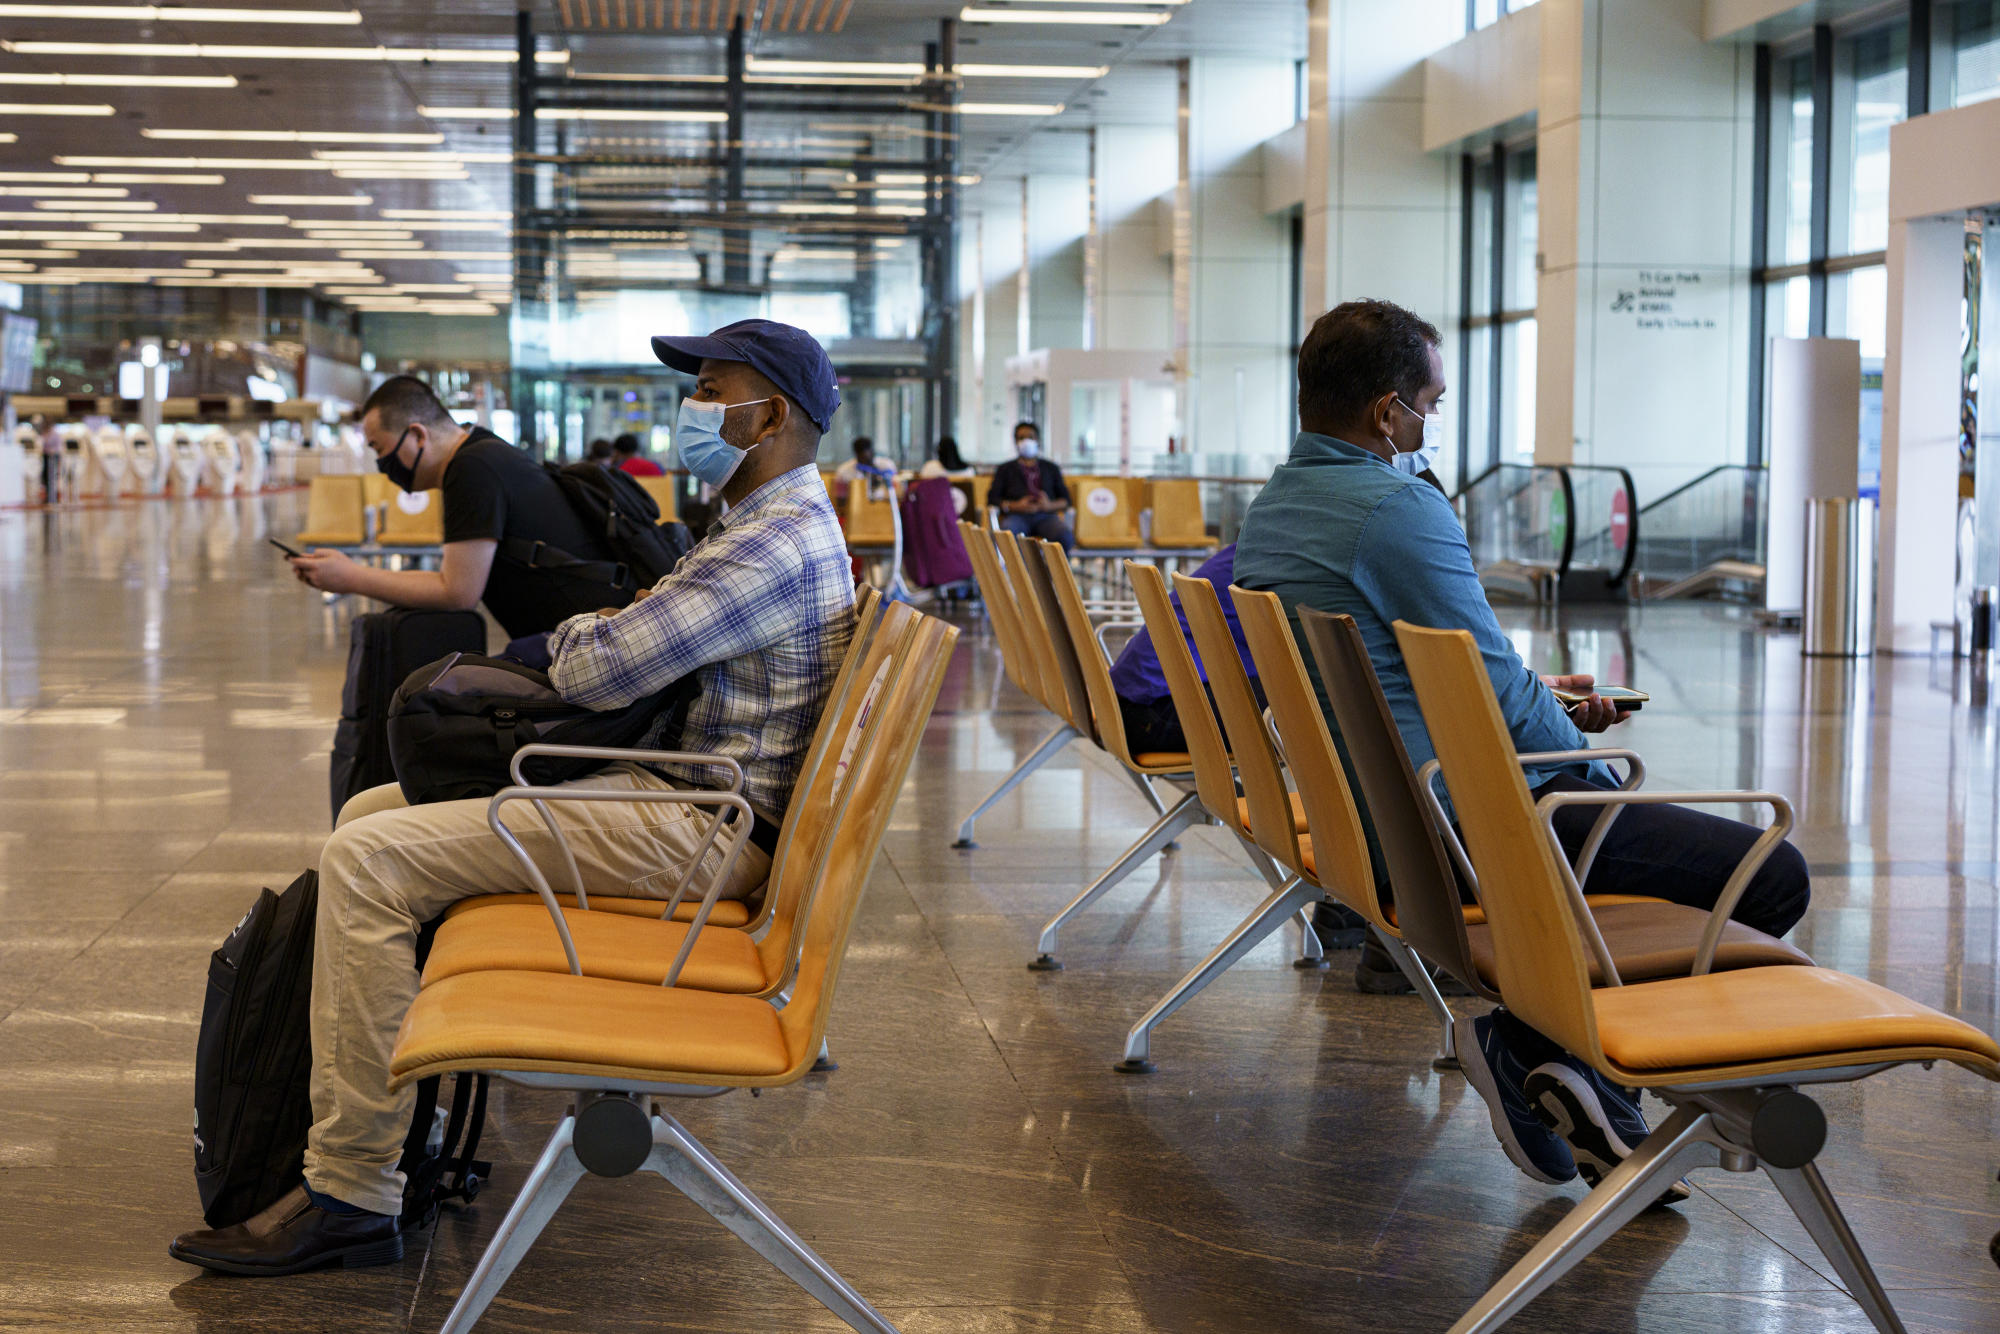 Foreign Visitors Can Buy Travel Insurance For Covid 19 Costs